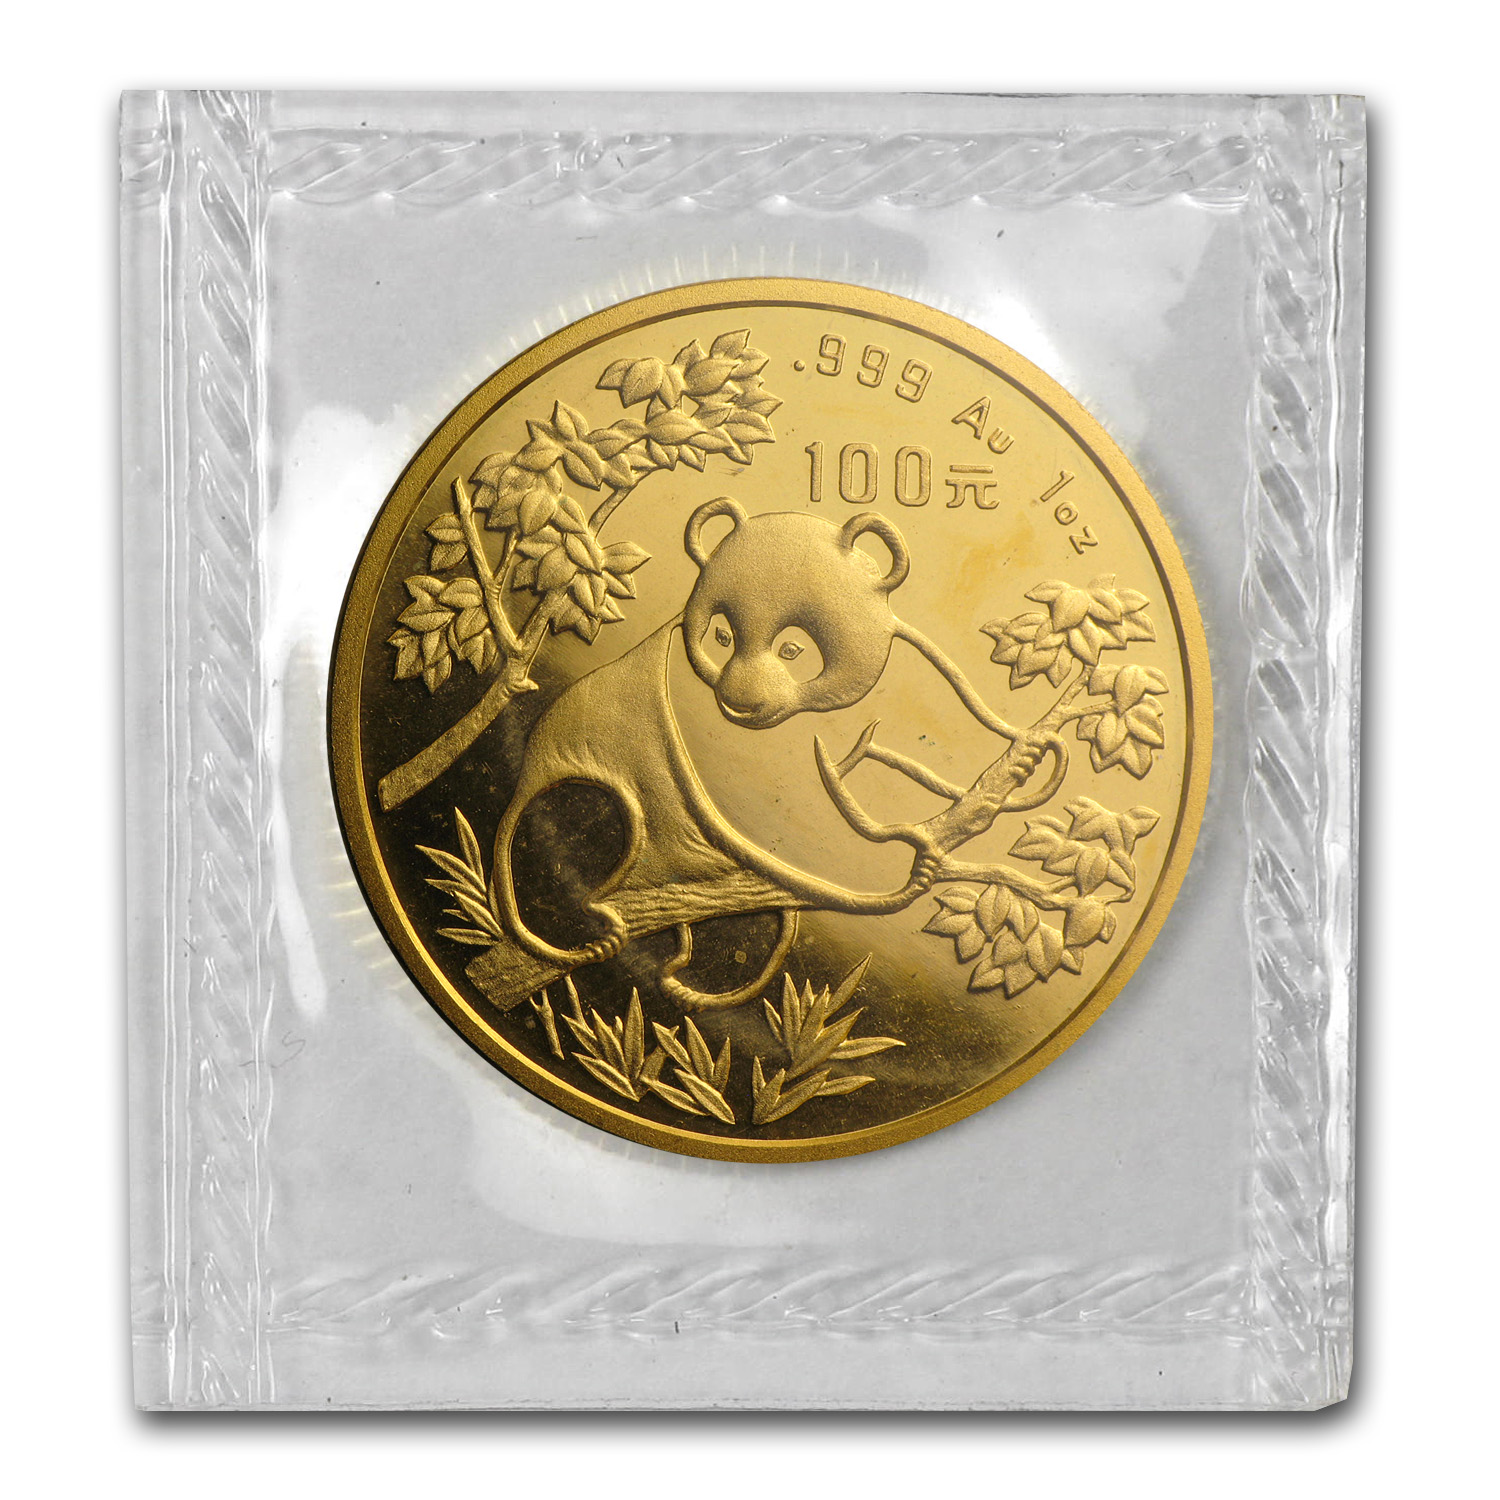 1992 1 oz Gold Chinese Panda Small Date BU (Sealed)